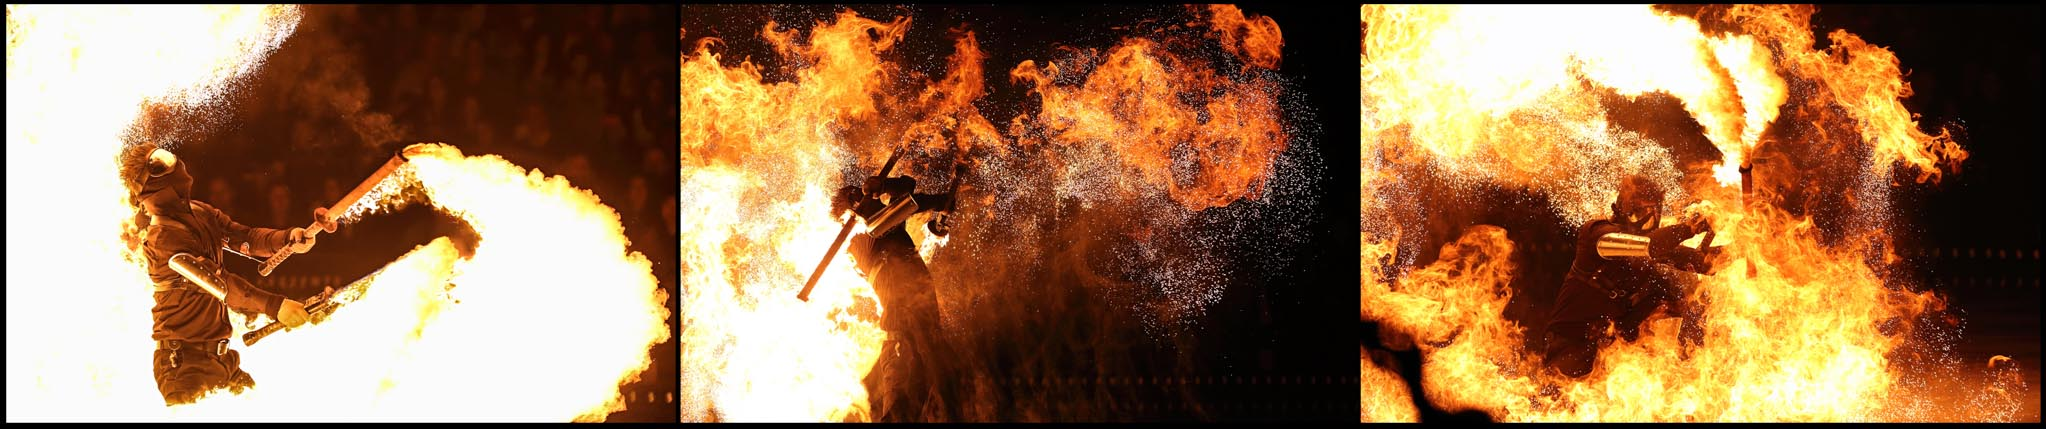 Fire breather swords, spectacular acts, fire shows, cirque acts, flamethrower, fire dancers, fire jugglers, special effects